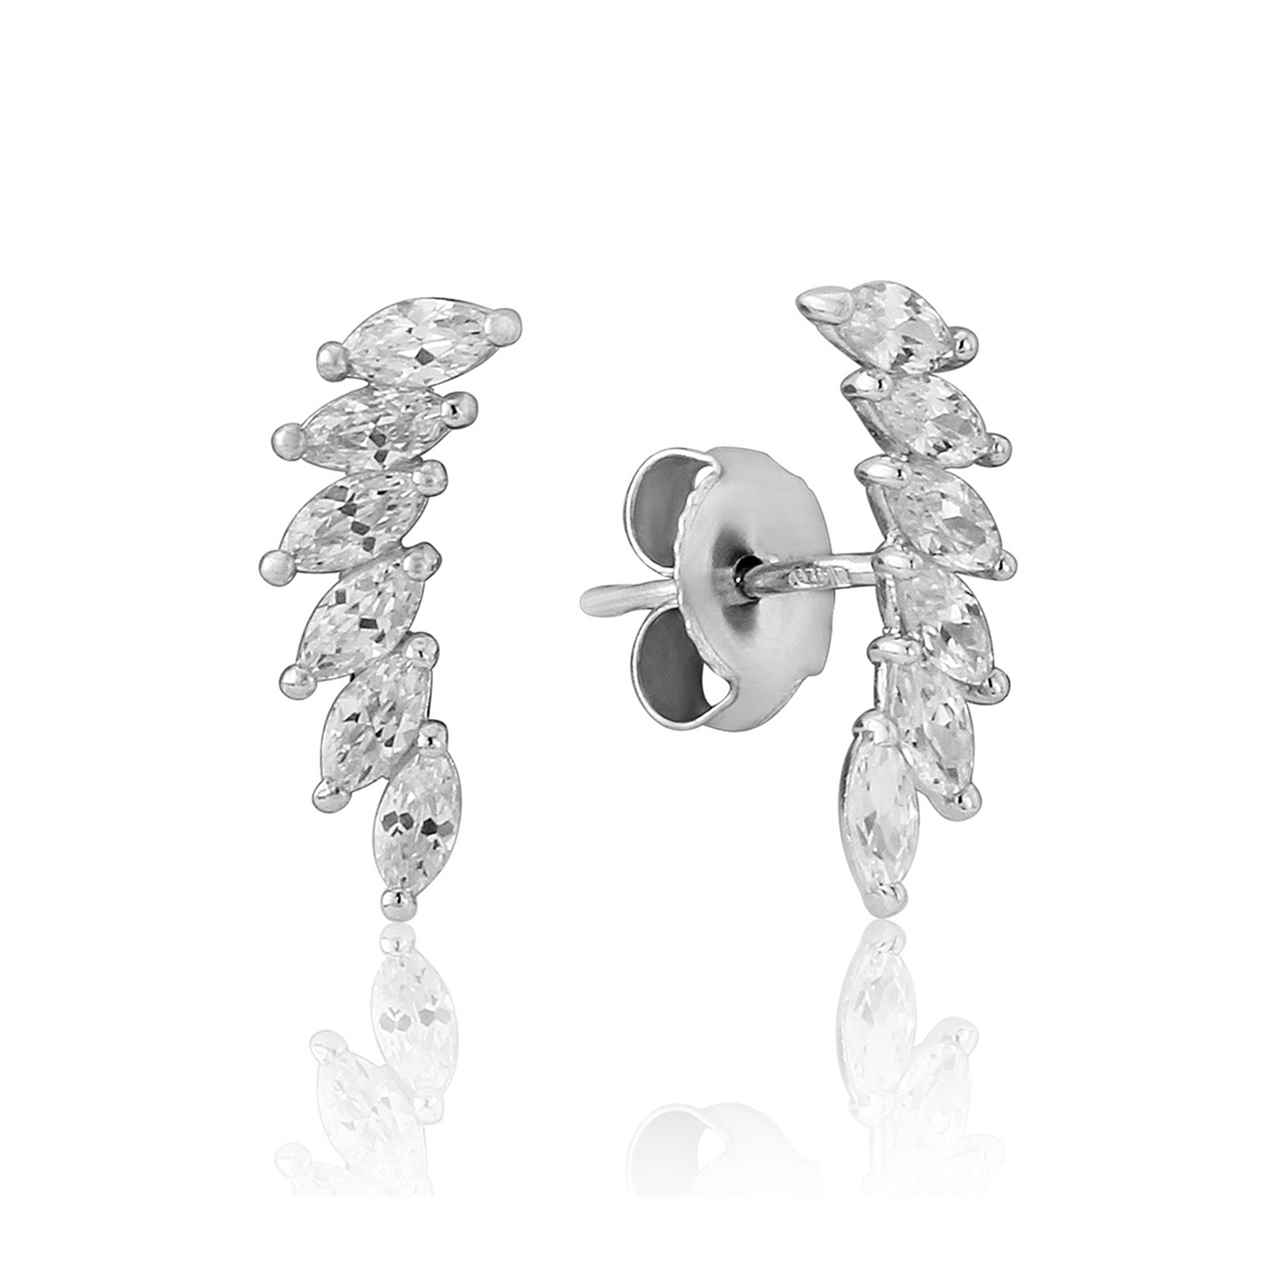 White Curved Cubic Zirconia Stem Earrings